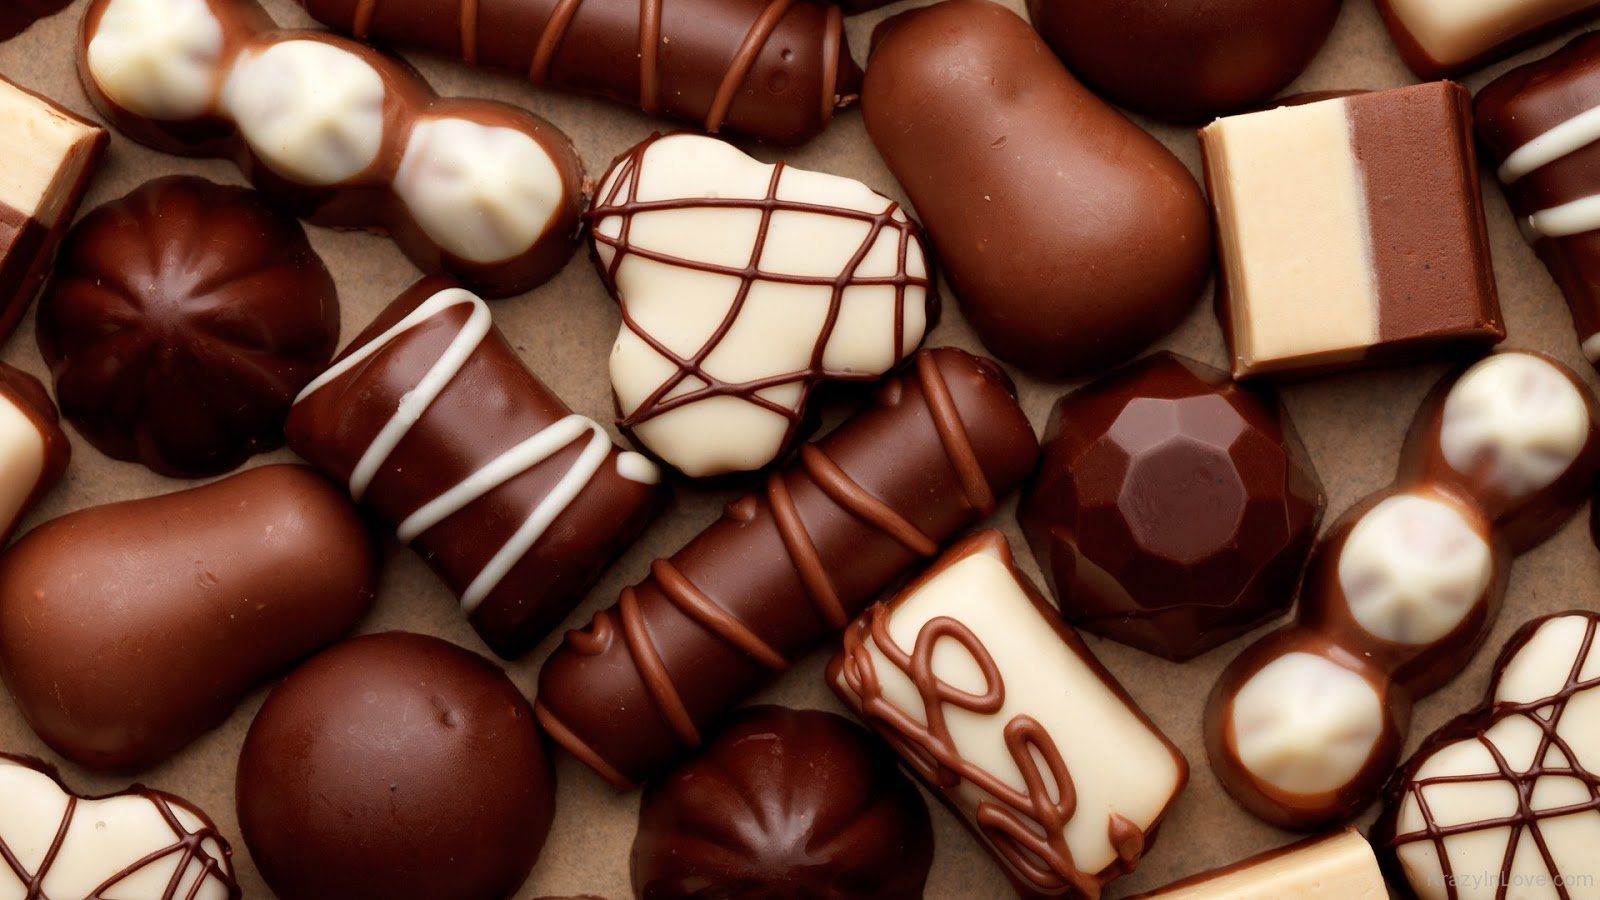 Stock your place with chocolates as you may not find it after 4 decades